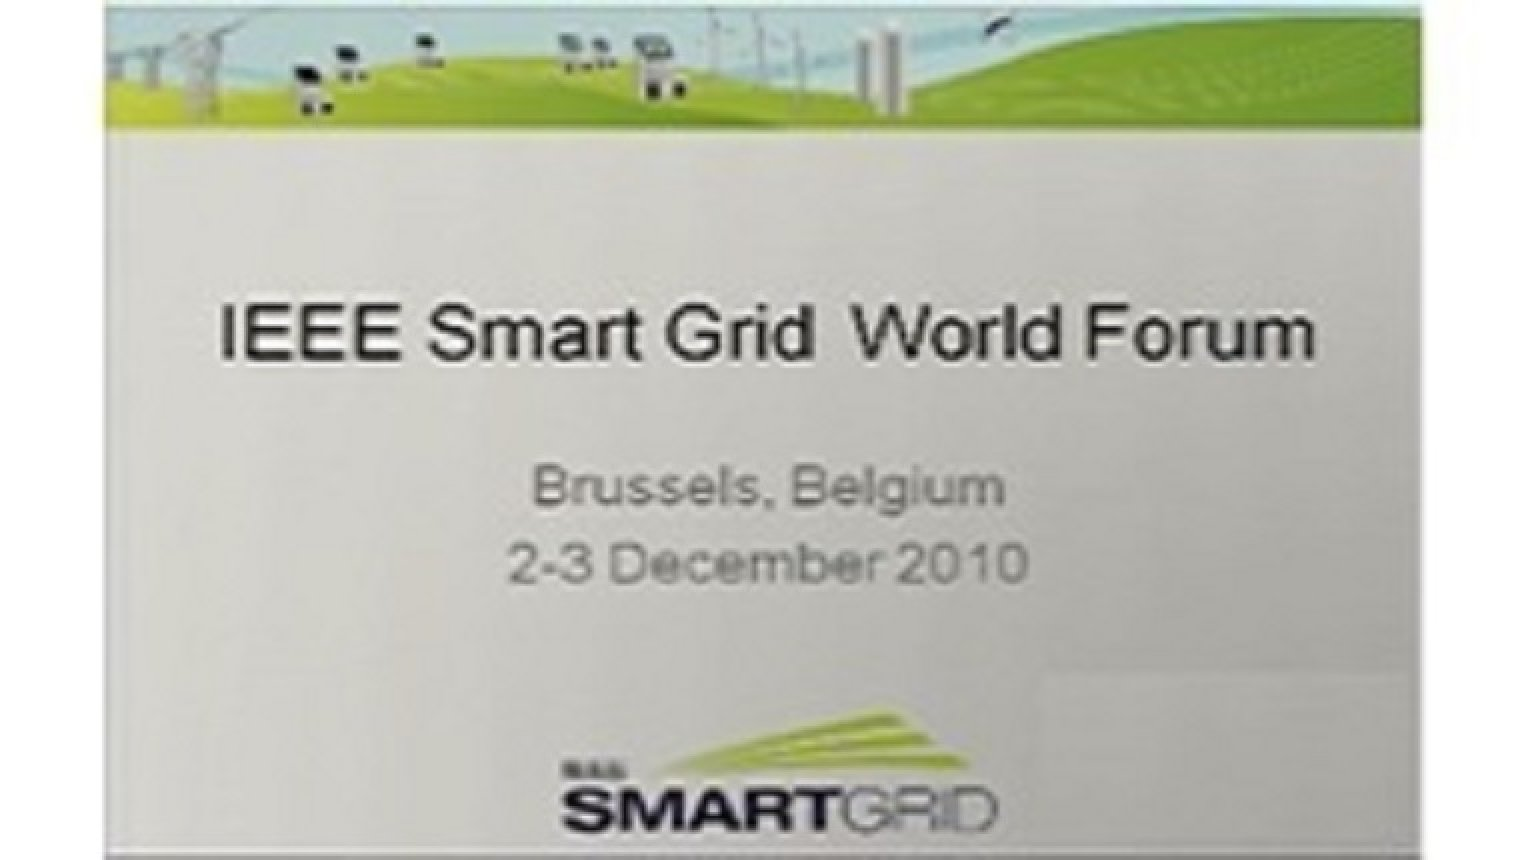 IEEE Smart Grid World Forum - Session 3 Panel Discussion